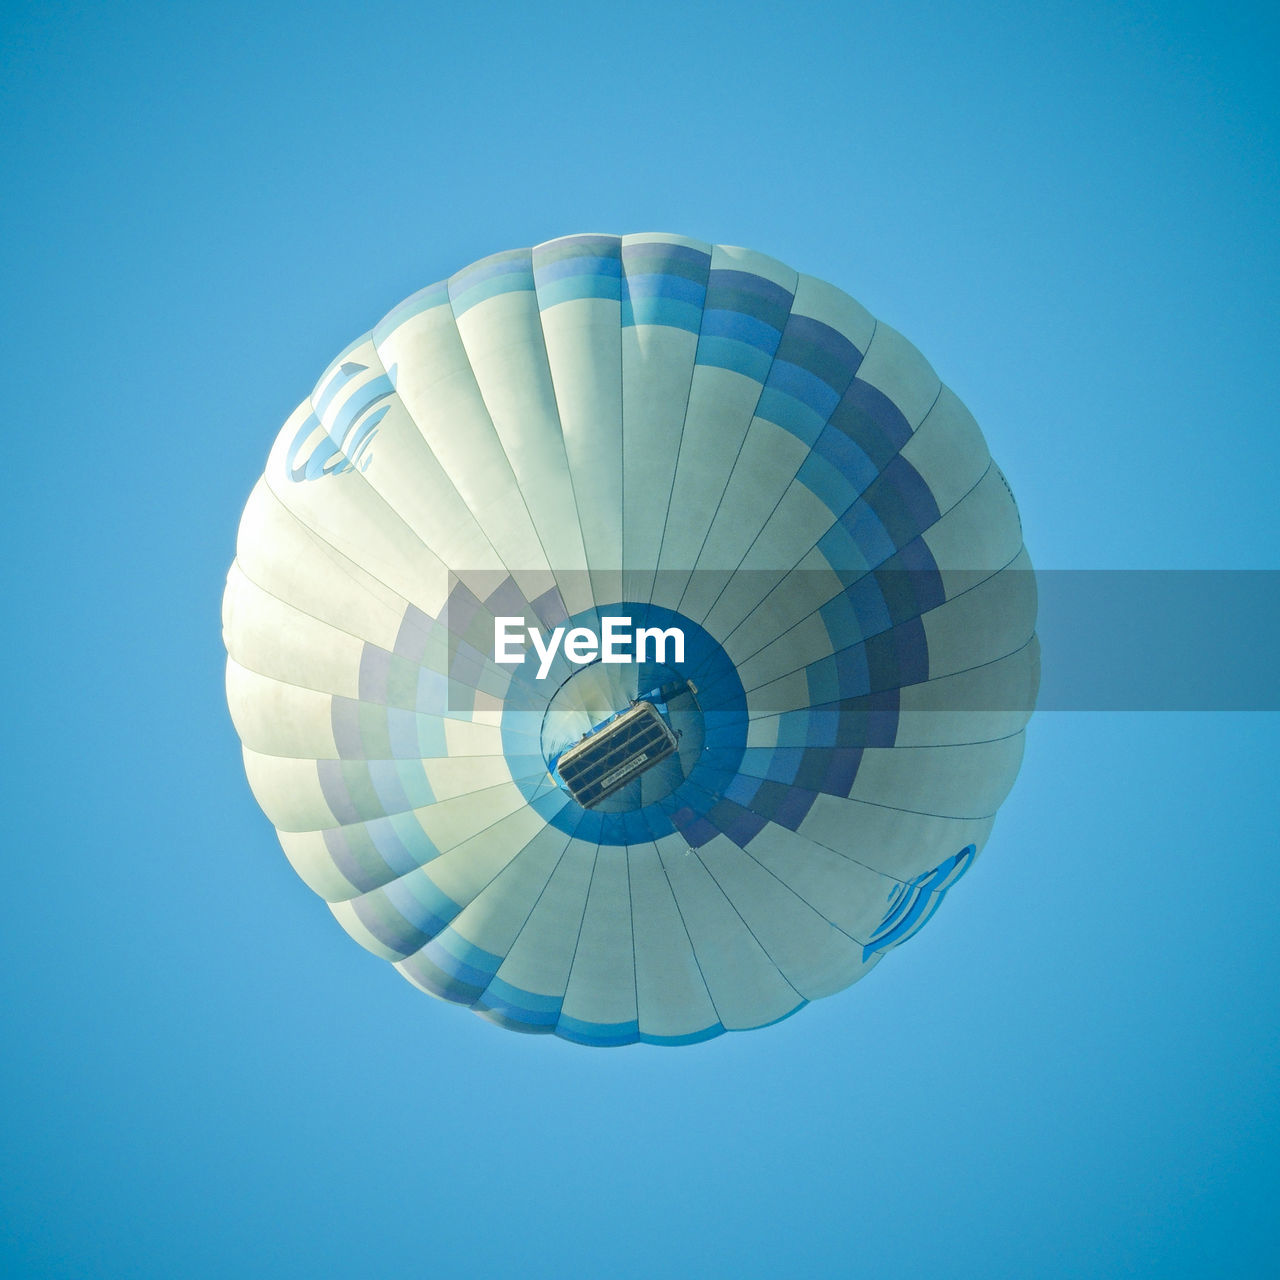 low angle view, adventure, parachute, clear sky, mid-air, flying, day, blue, extreme sports, outdoors, no people, ballooning festival, hot air balloon, sky